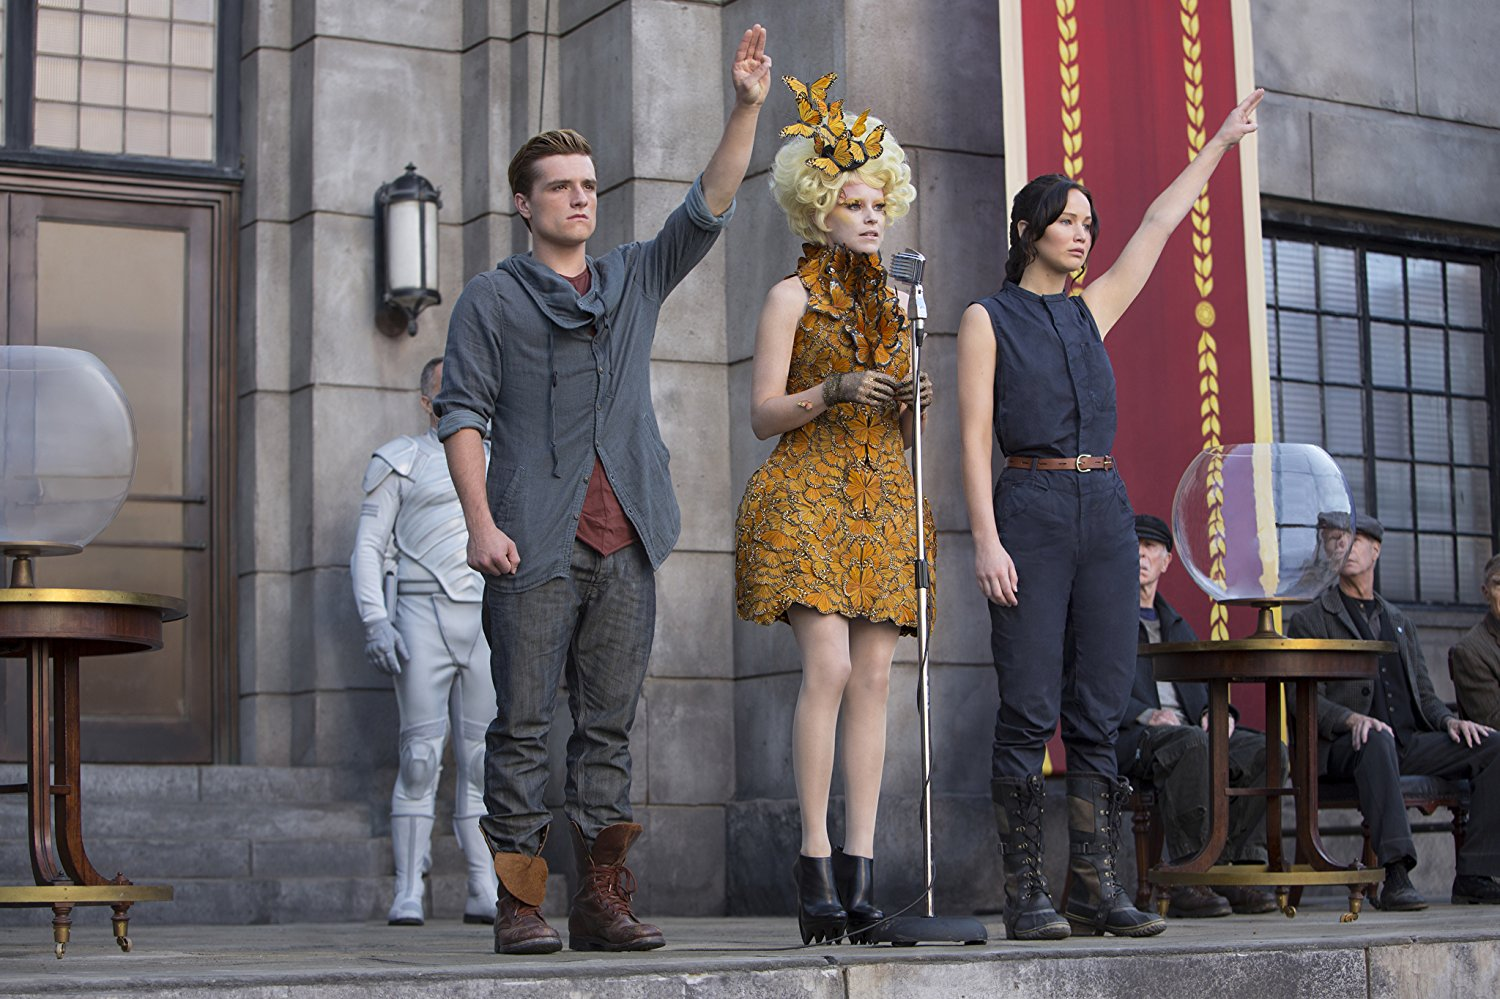 Scene depicting Effie choosing Peeta and Katniss to reenter the Hunger Games in the second volume of the series.